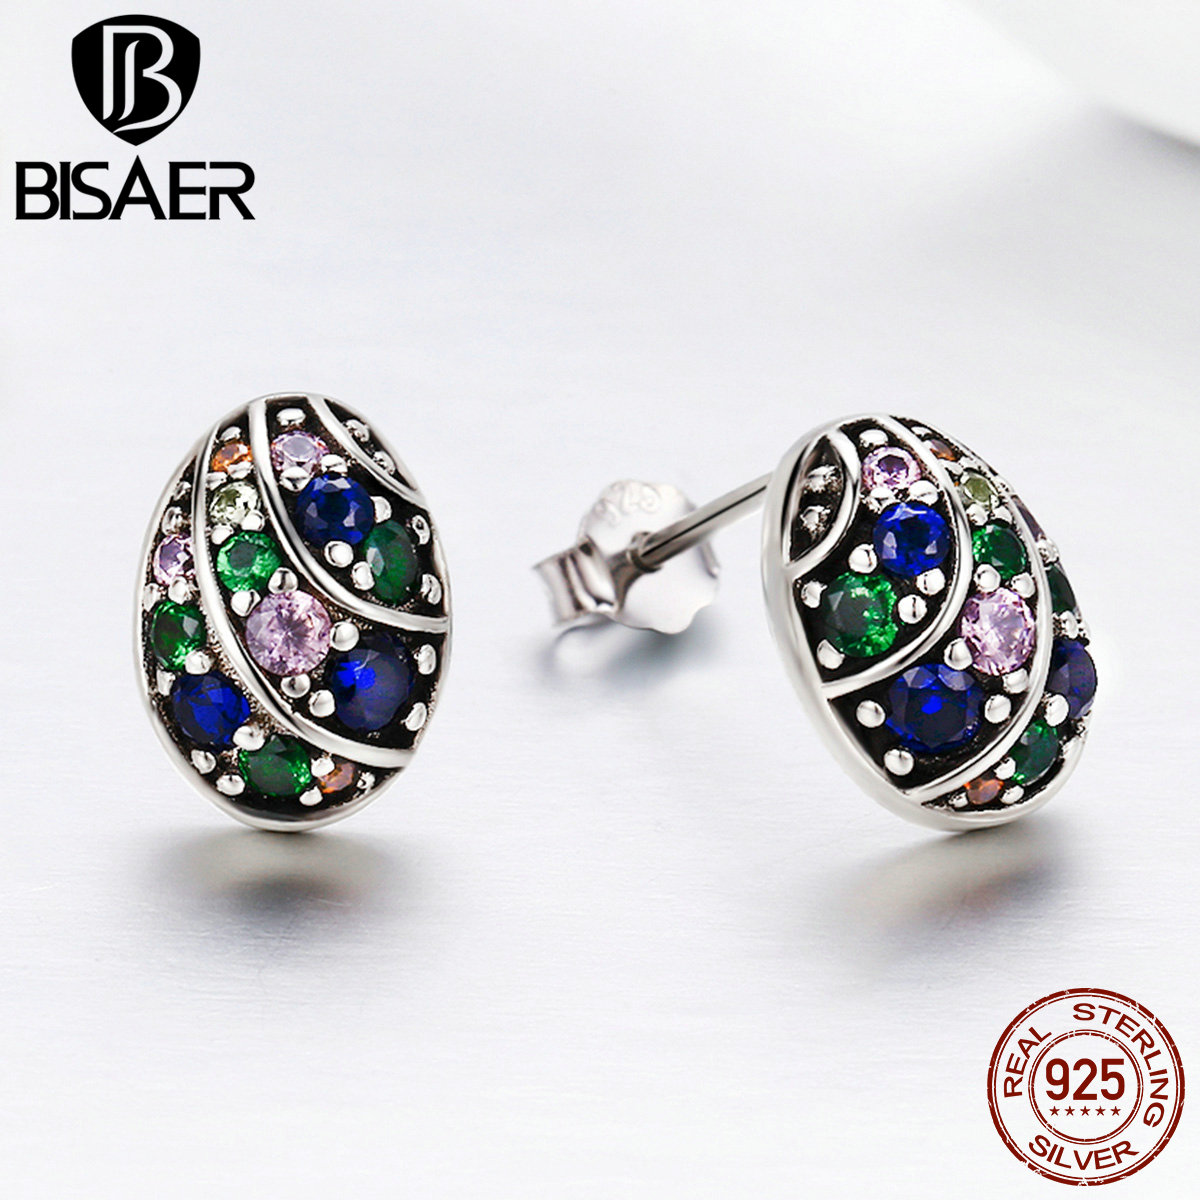 BISAER Authentic 100% 925 Sterling Silver Brincos Easter Egg Shape Round Exquisite Stud Earrings for Women Silver Jewelry GXE293